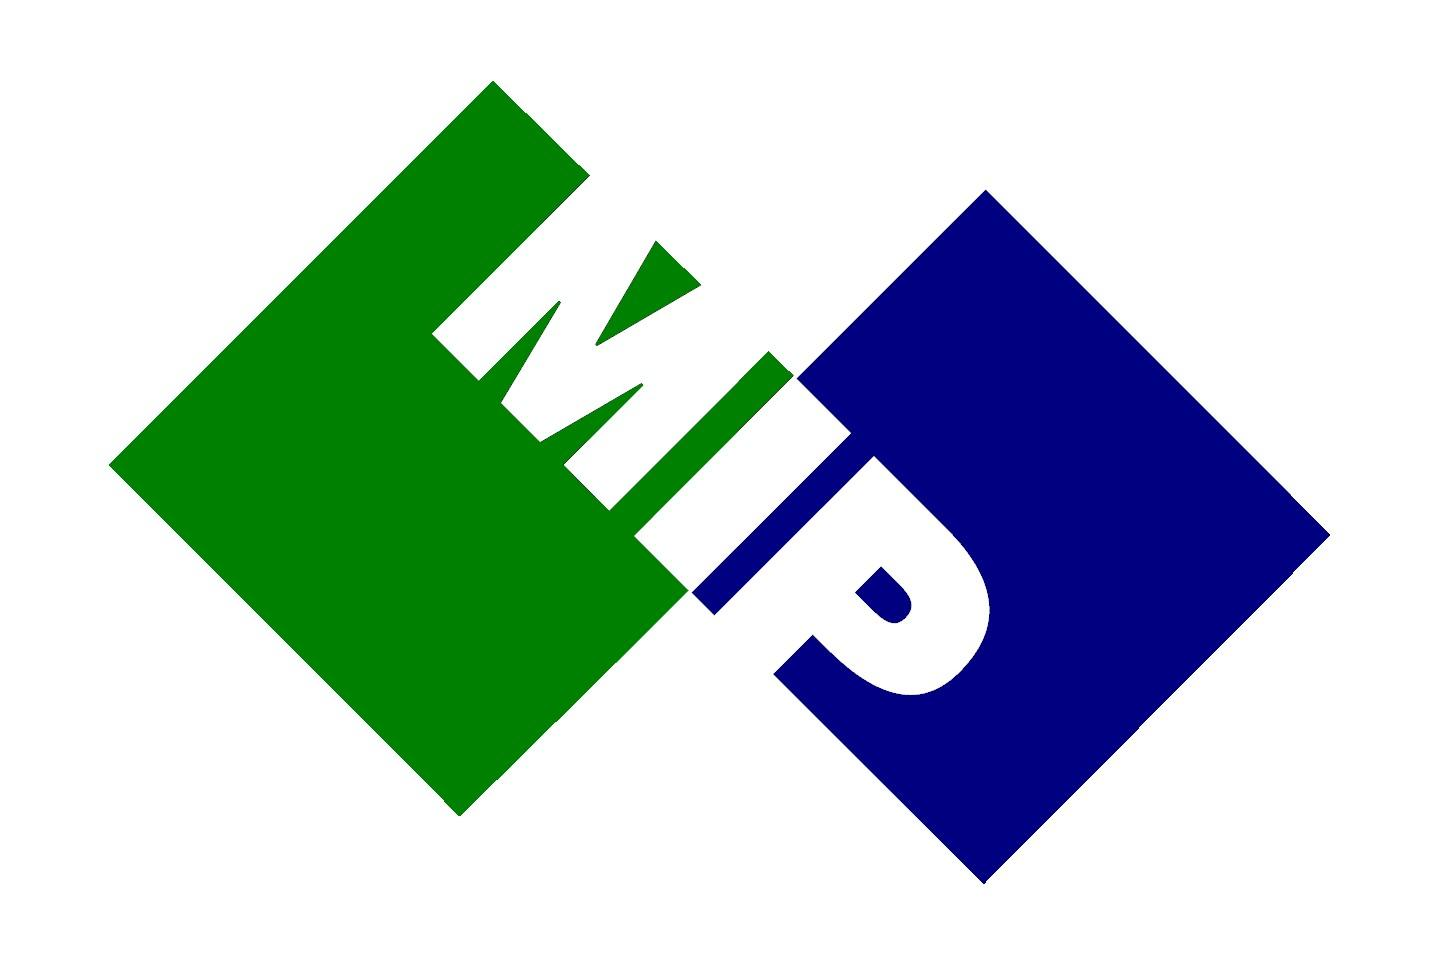 mip to sponsor yellowfin s business intelligence think tank naturally we re delighted to welcome mip another leading n provider of agile reporting and analytical solutions as an official sponsor of think